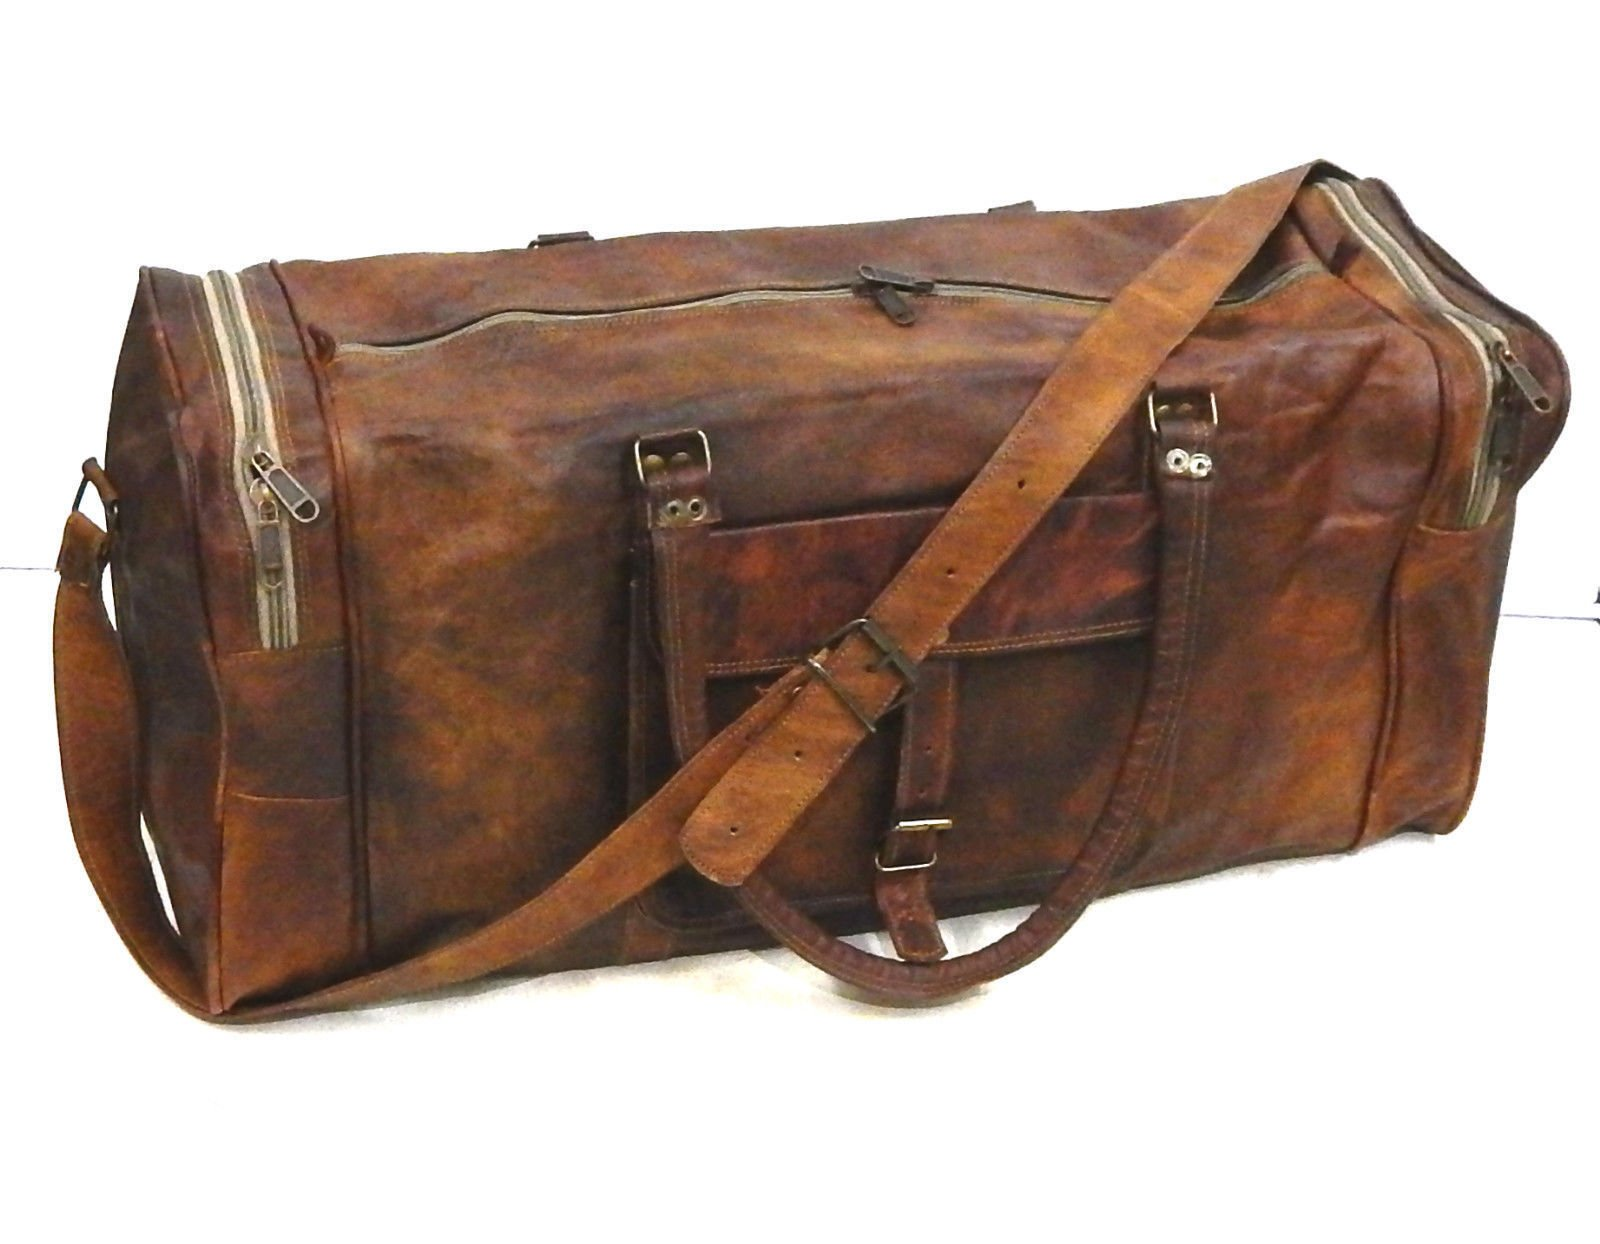 Firu-Handmade 24'' Vintage Style Leather Brown Duffel Gym Sports Luggage Bag Handmade by Firu-Handmade (Image #2)